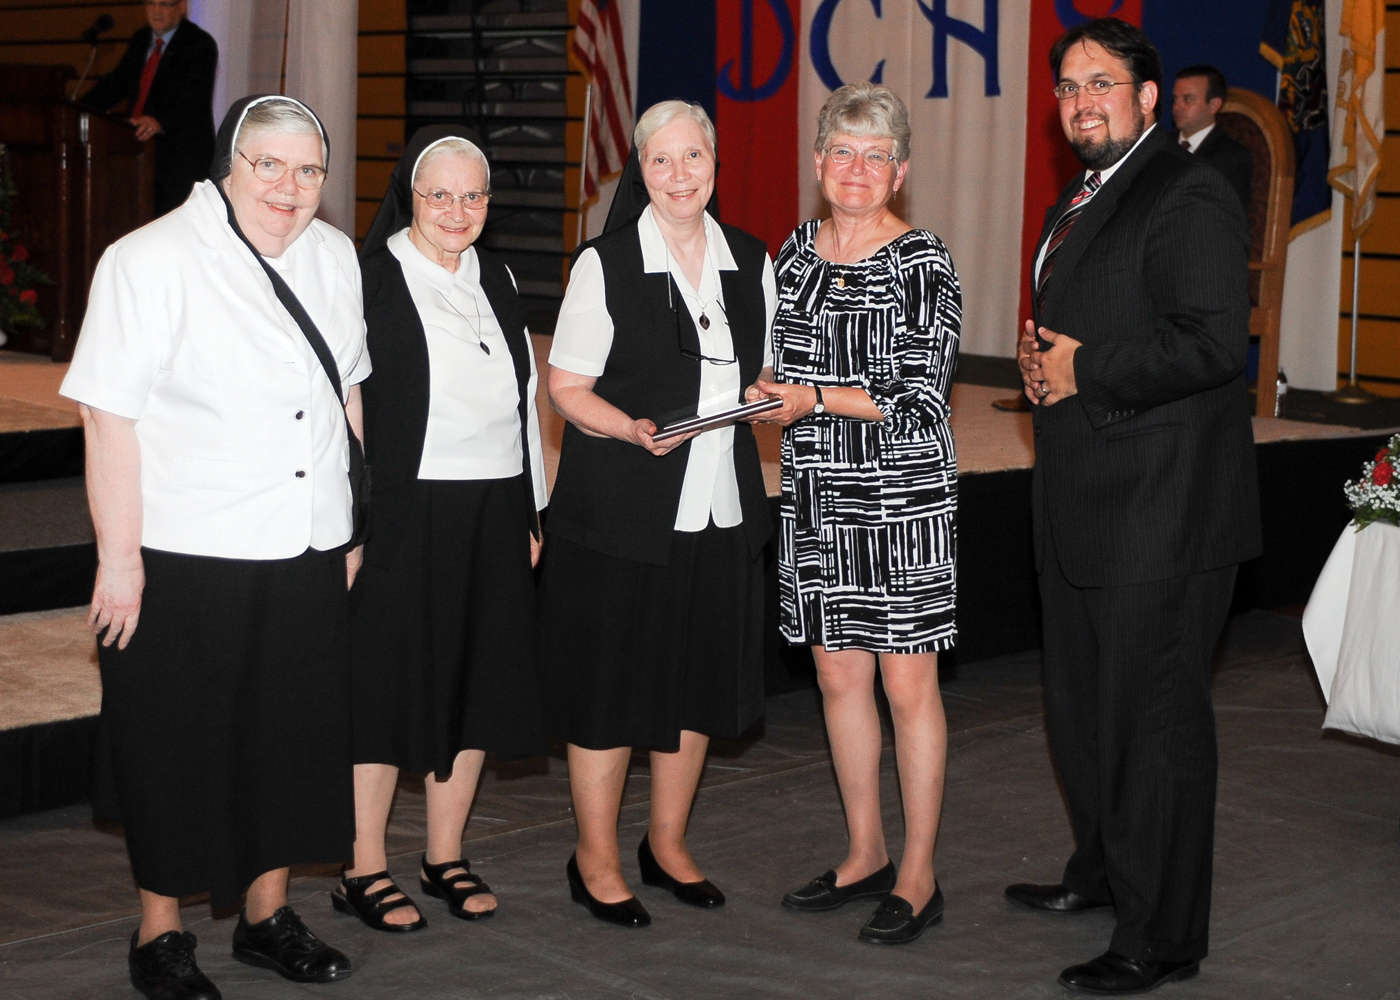 Sister Marilyn McCusker, a former faculty member, Sister Mary Mark Smith '58 and Sister Marie Pauline Demek, former principal at Annunciation B.V.M. School, accept induction on behalf of the Sisters of Christian Charity in Mendham, N.J.